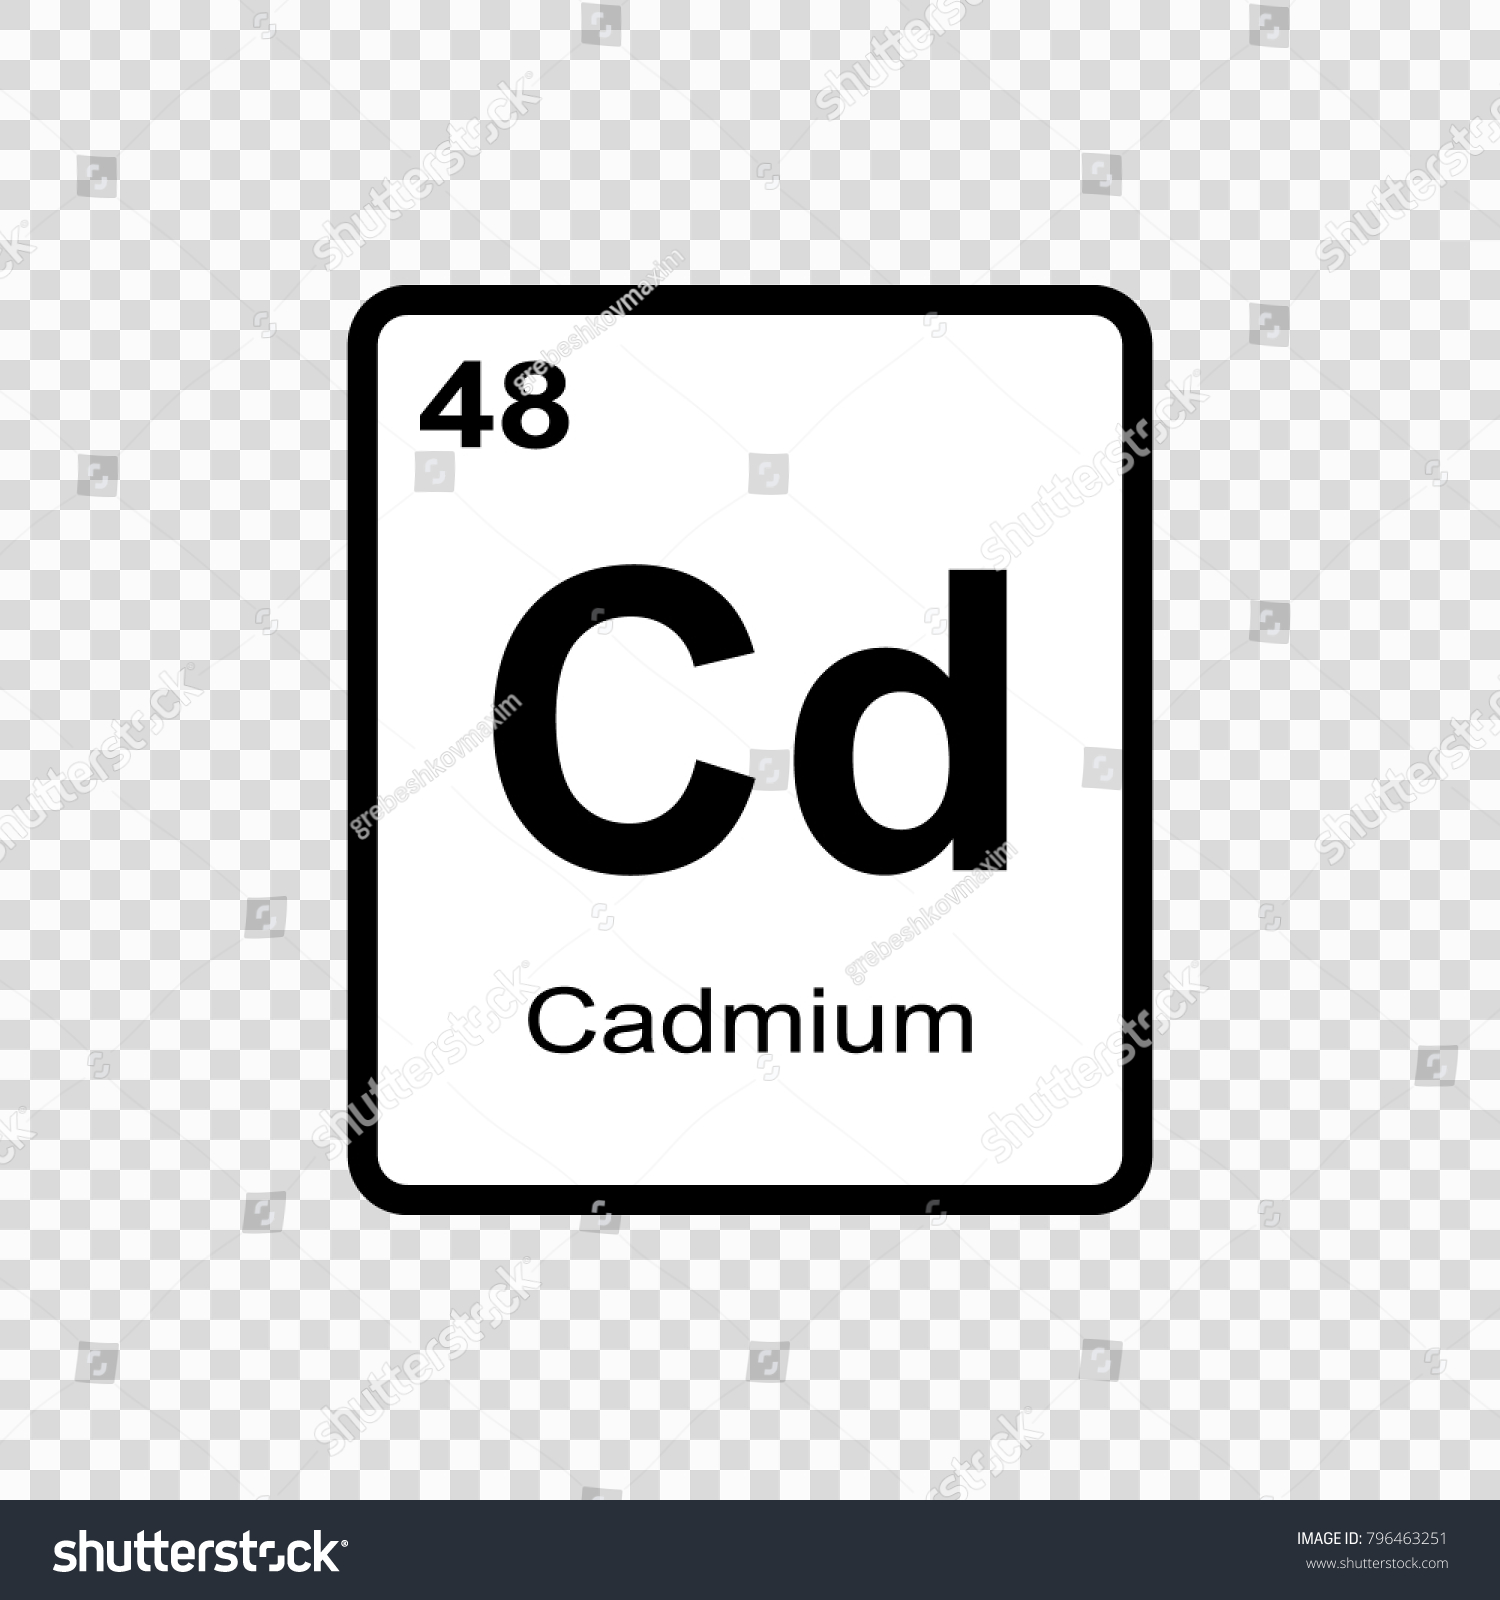 Chemical symbol for cadmium image collections symbol and sign ideas symbol for cadmium images symbol and sign ideas cadmium chemical element sign atomic number stock vector buycottarizona